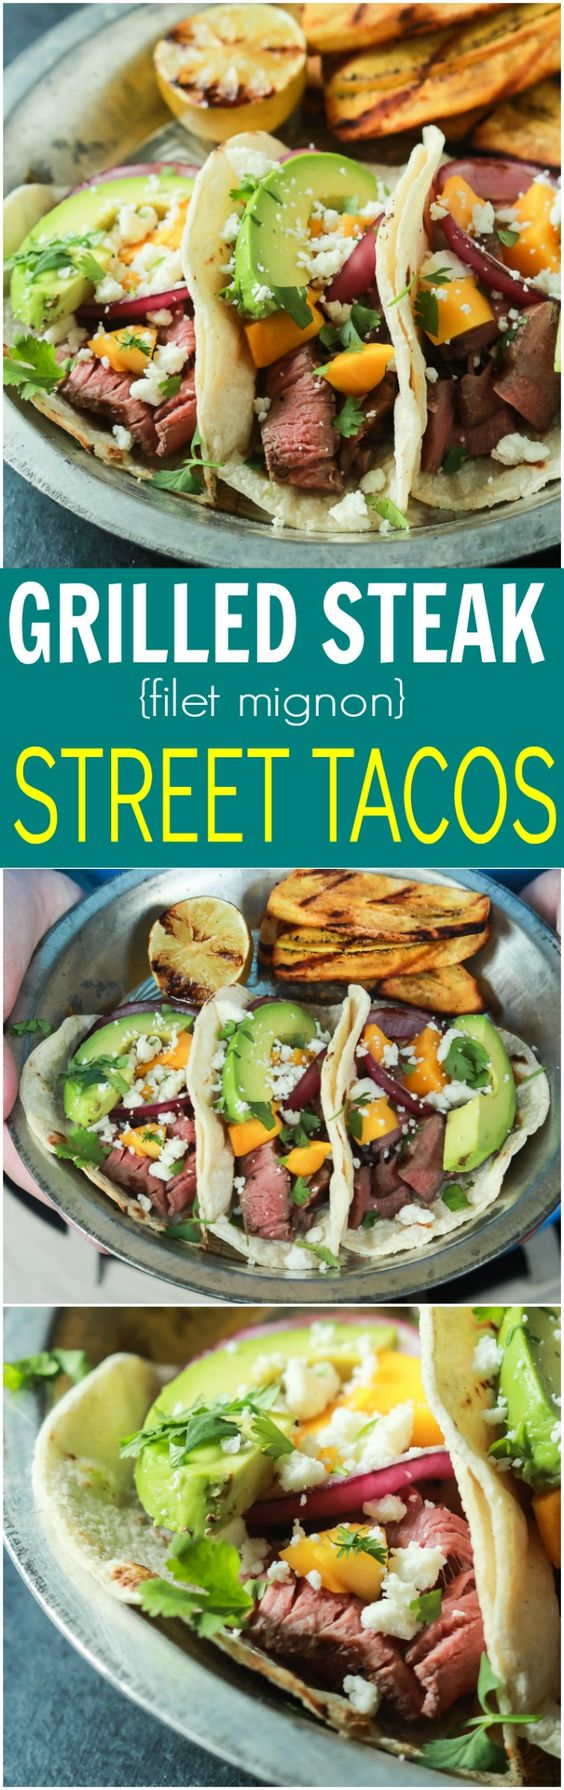 These Grilled Steak Street Tacos are filled with tender Filet Mignon, fresh mango, creamy avocado, and charred onions. The perfect 20 minute steak dinner that tastes like a flavor bomb went off in your mouth! | joyfulhealthyeats.com #glutenfree